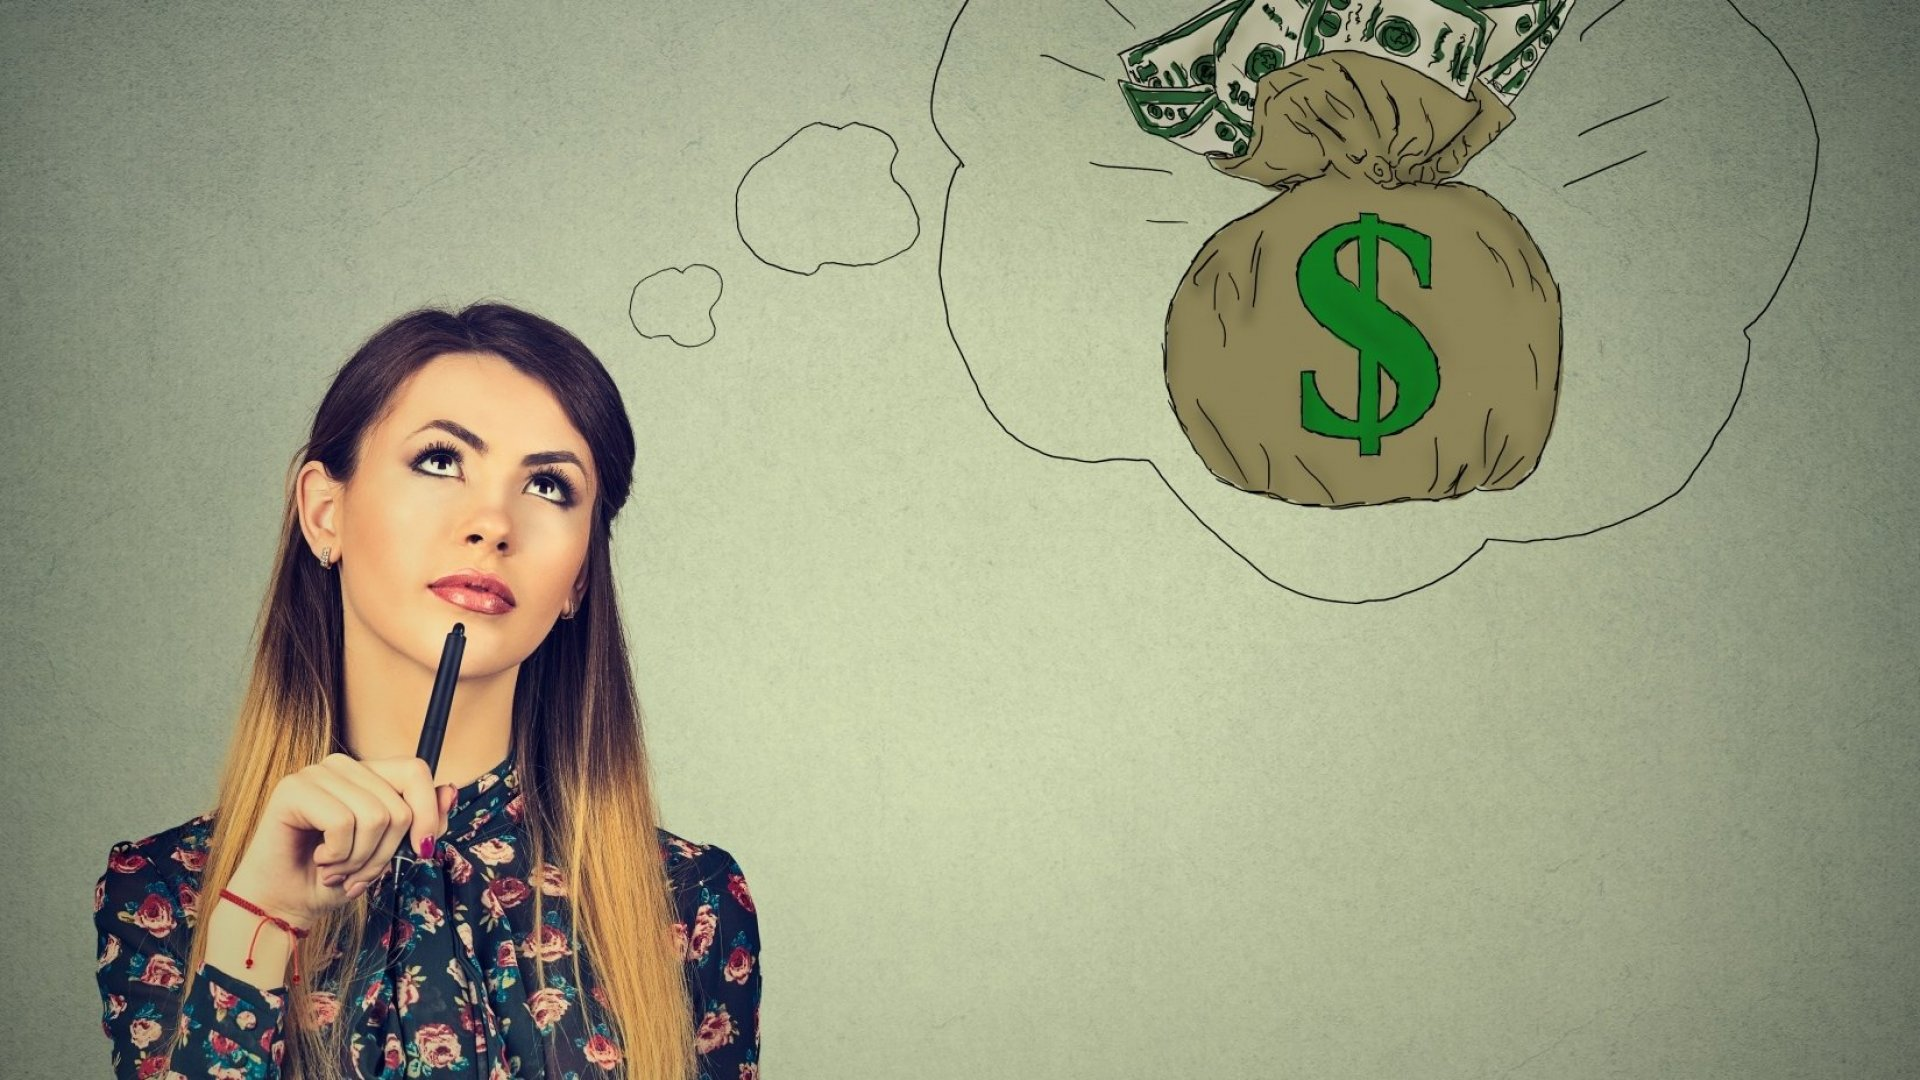 How To Respond When Asked: What Salary Were You Expecting?